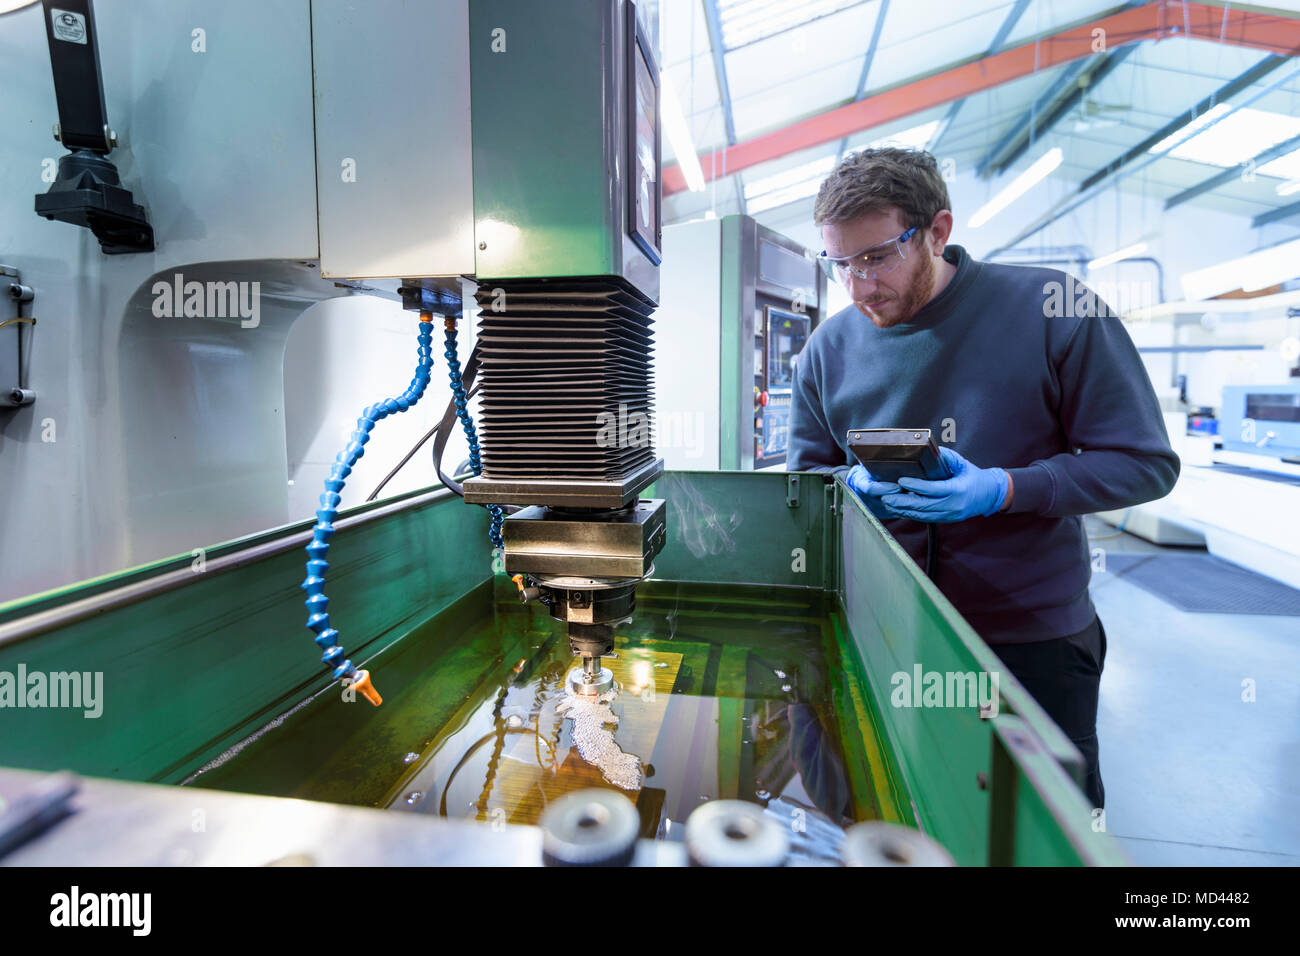 Engineer operating solid EDM (Spark Erosion Machine) in precision engineering factory - Stock Image